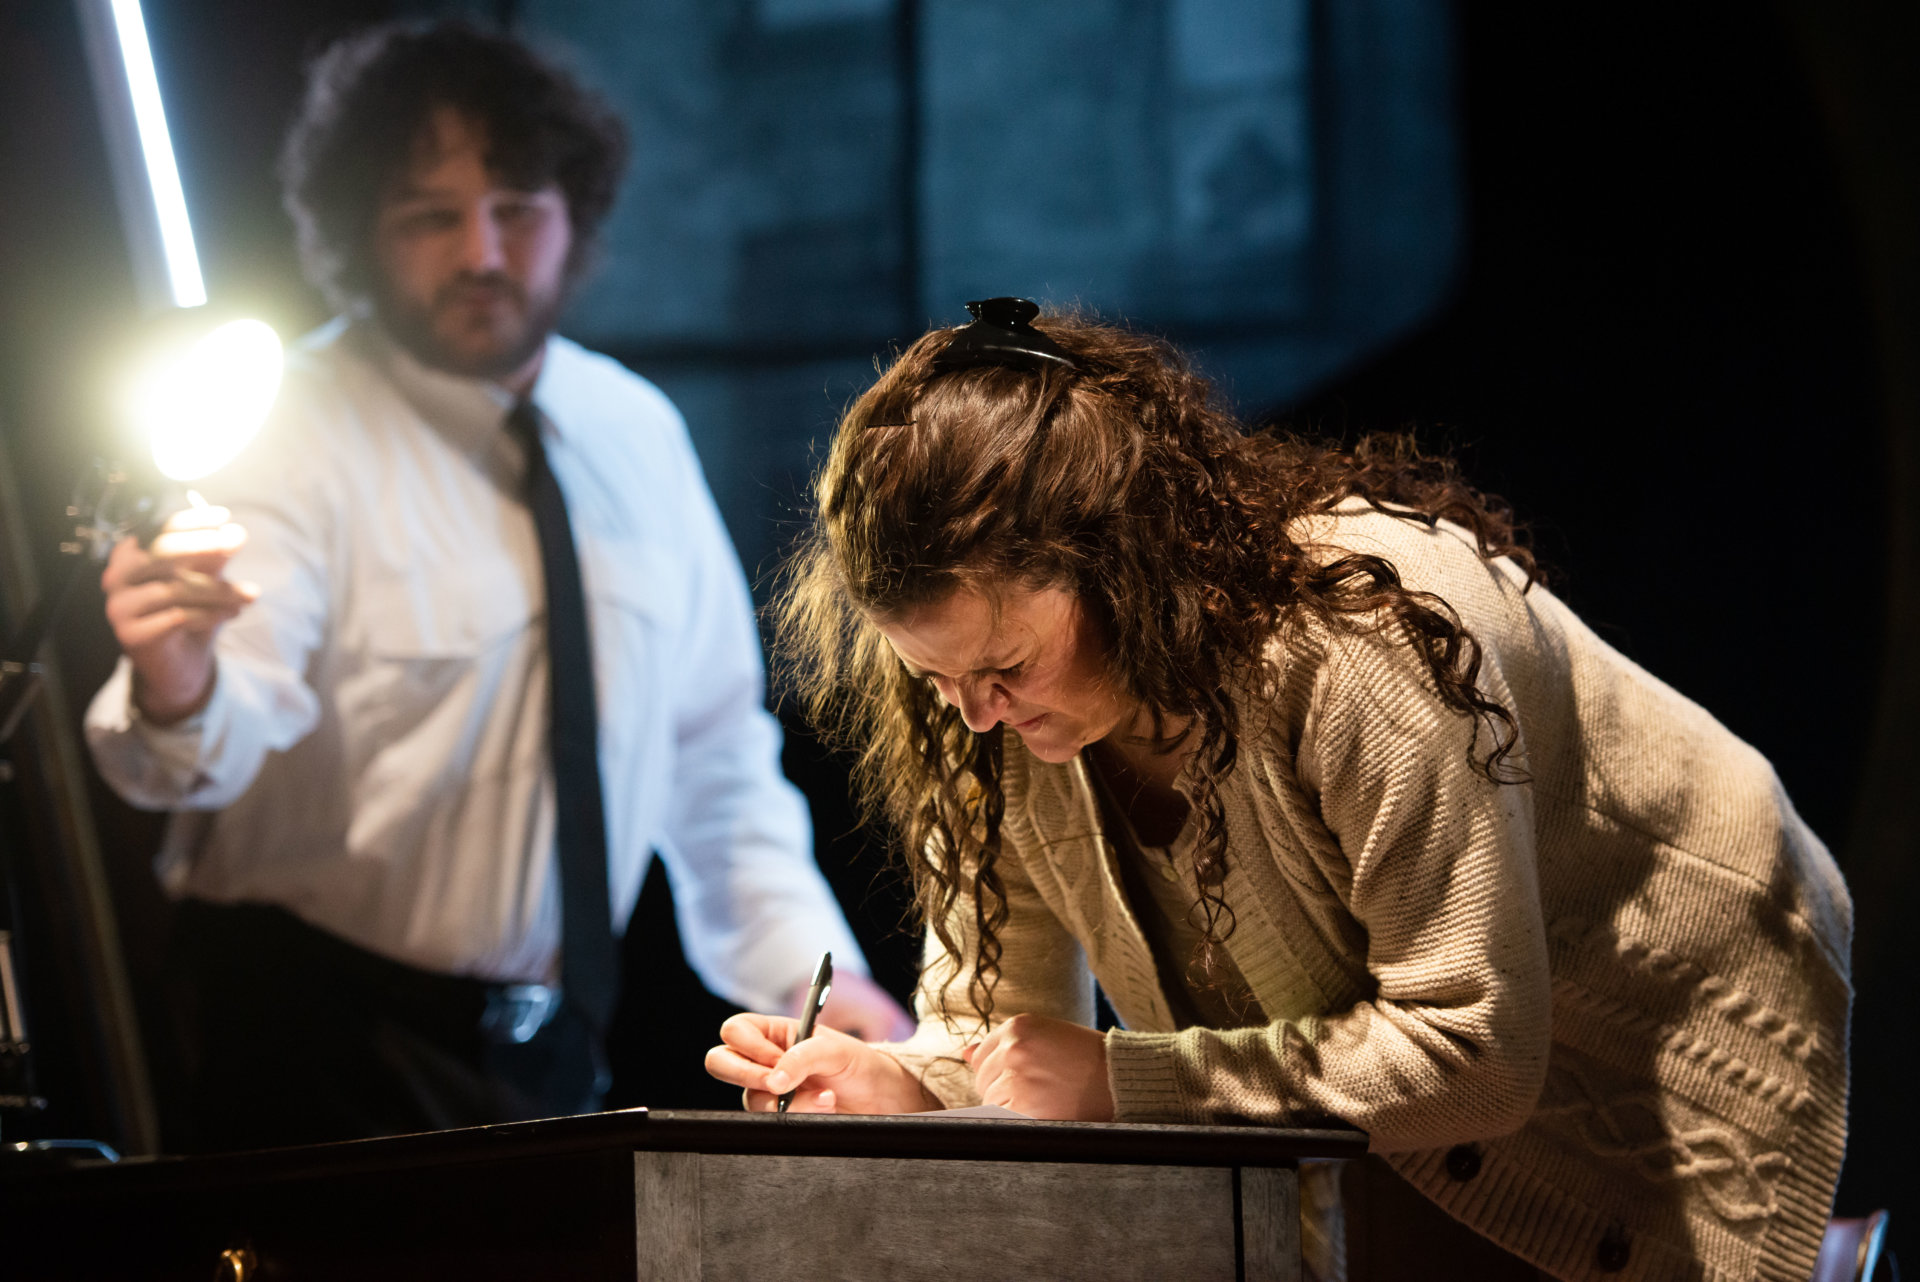 A person leans over a table writing while another points a light in their direction